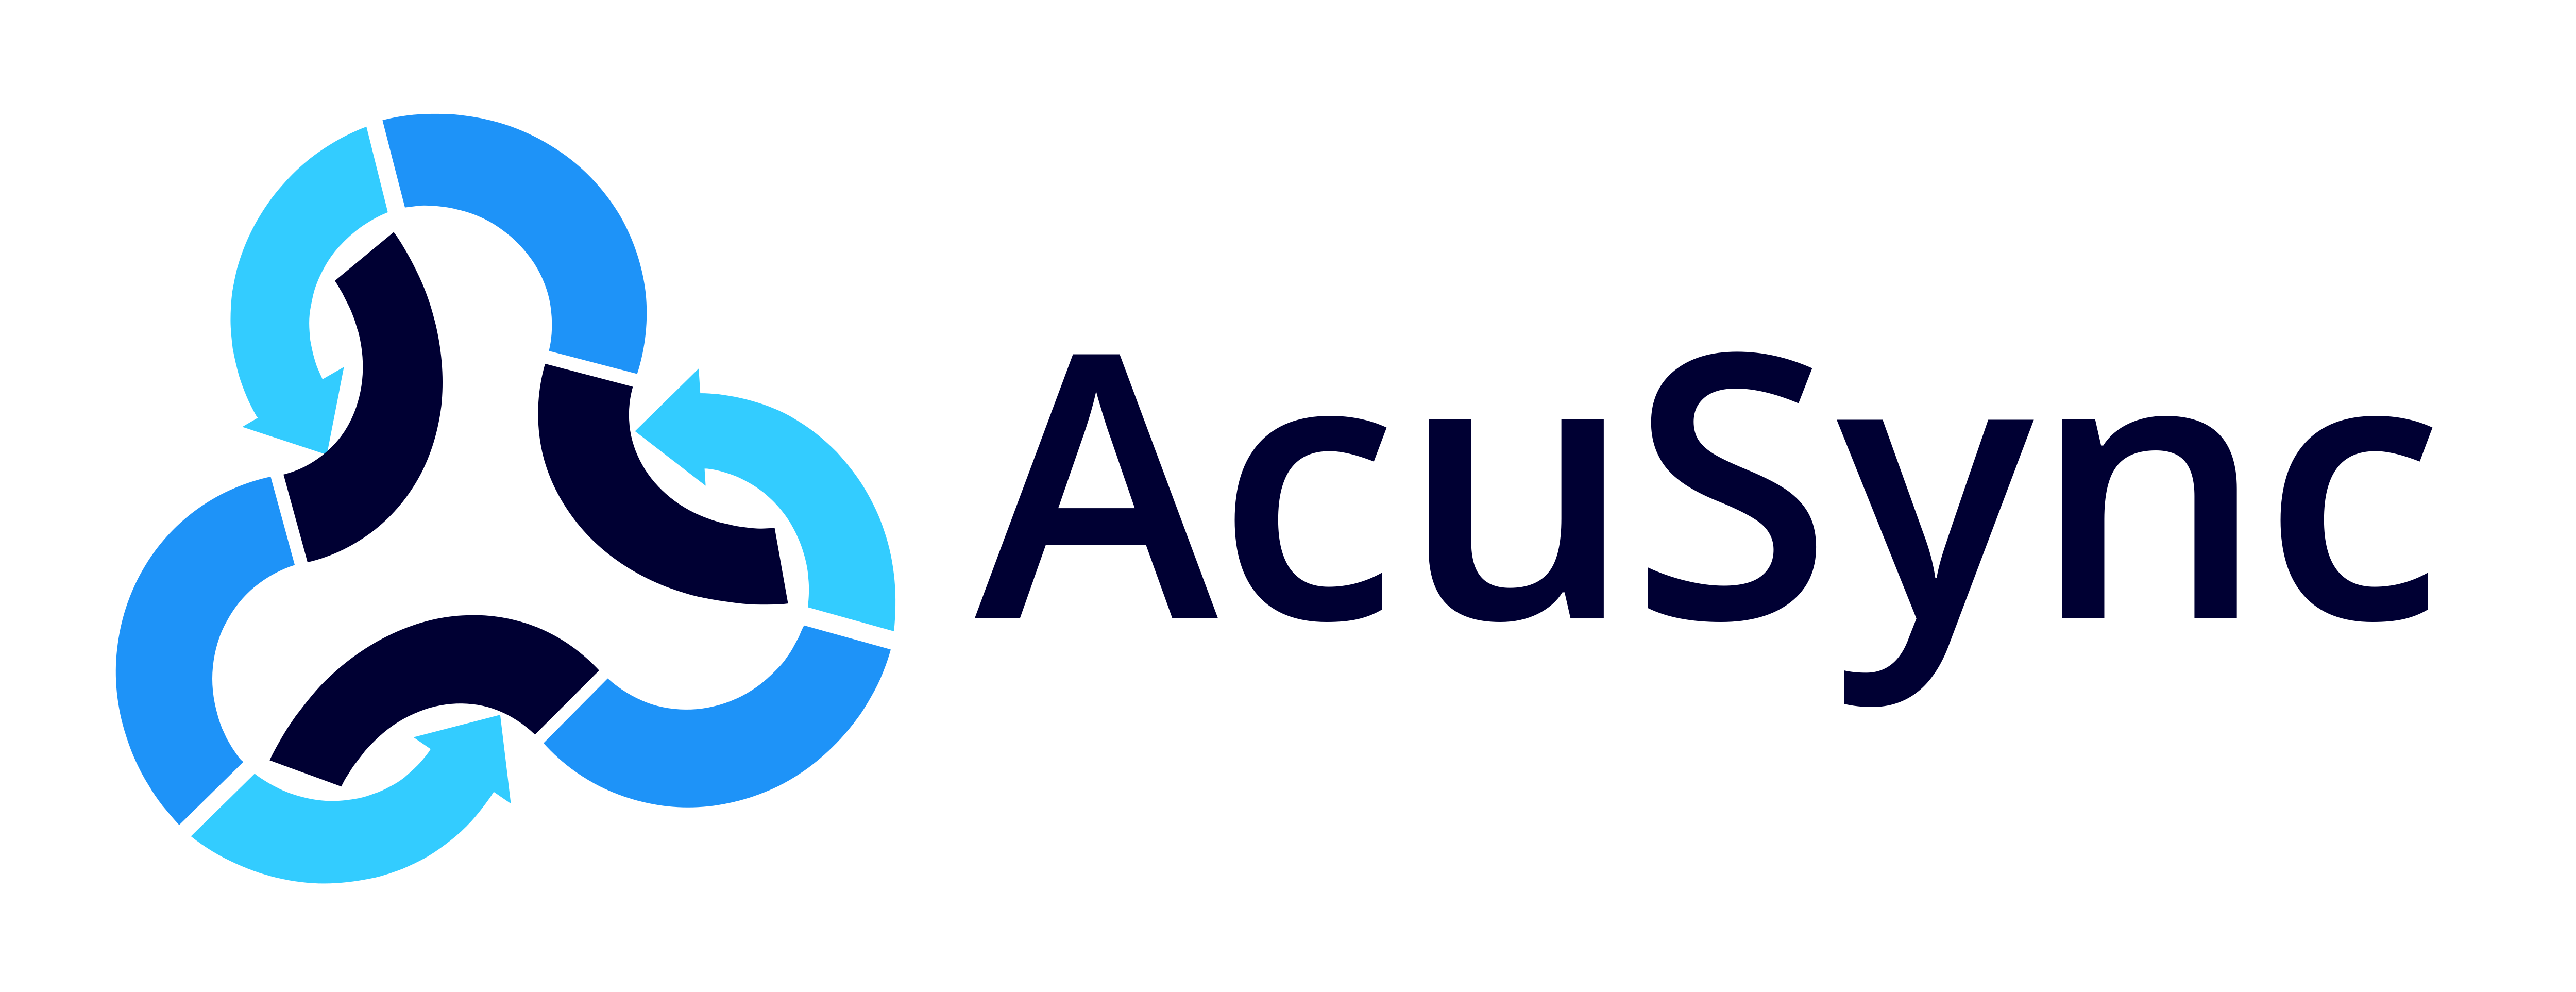 AcuSync - Bank Feeds & Expense Receipts - EIS Eclectic Innovative Solutions